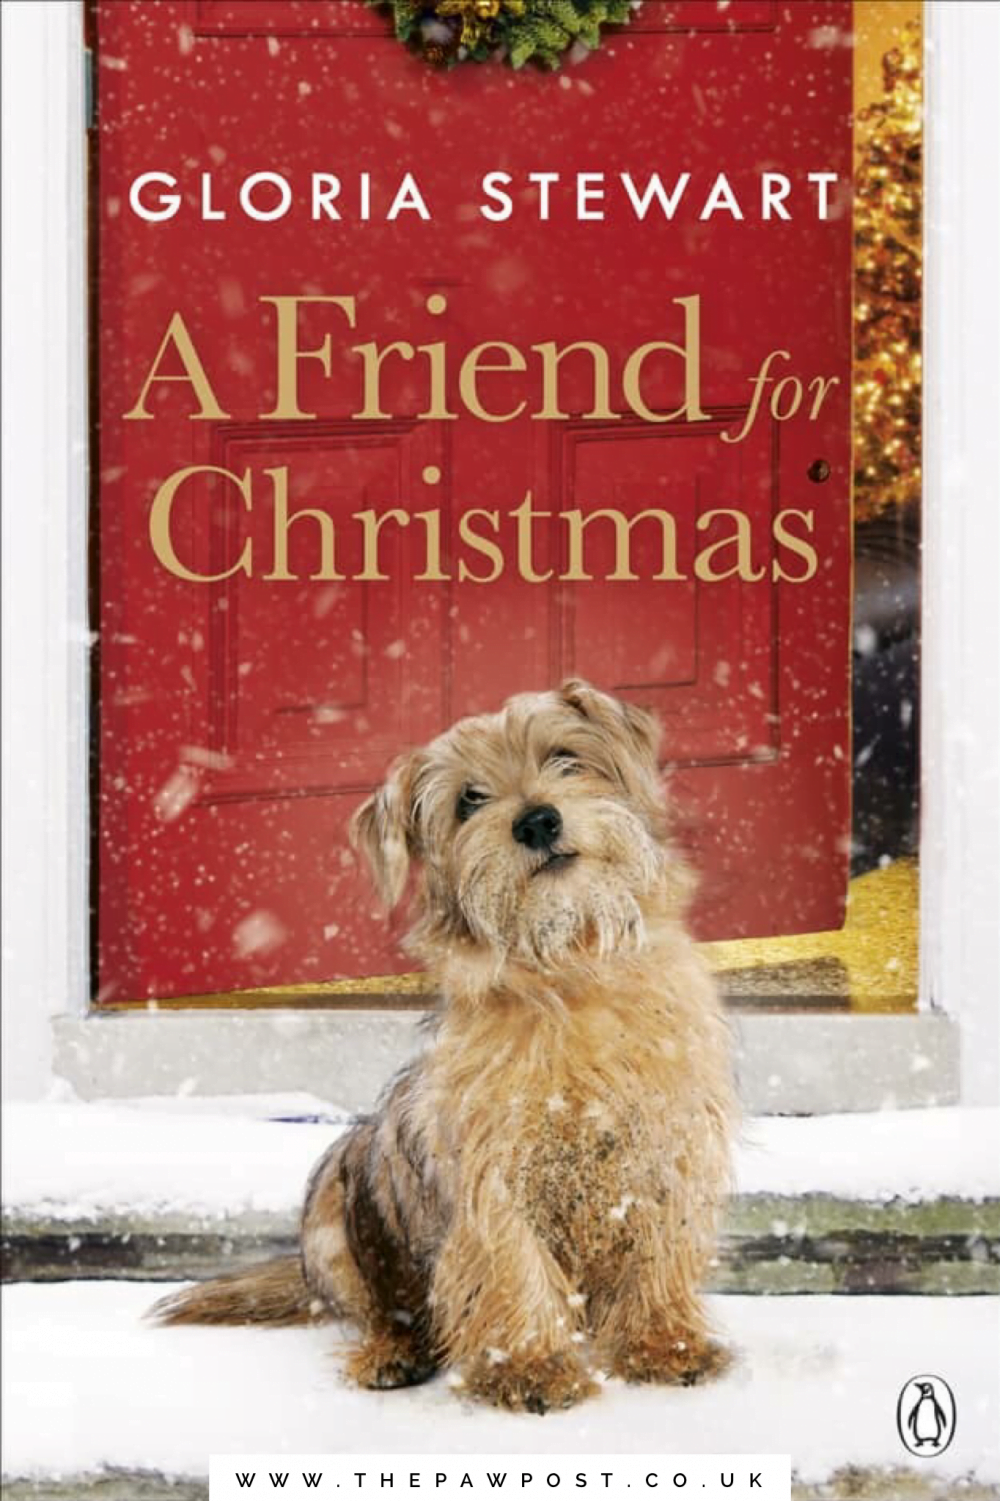 Gloria Stewart, founder of Home Alone At Christmas, talks about her new book, A Friend For Christmas